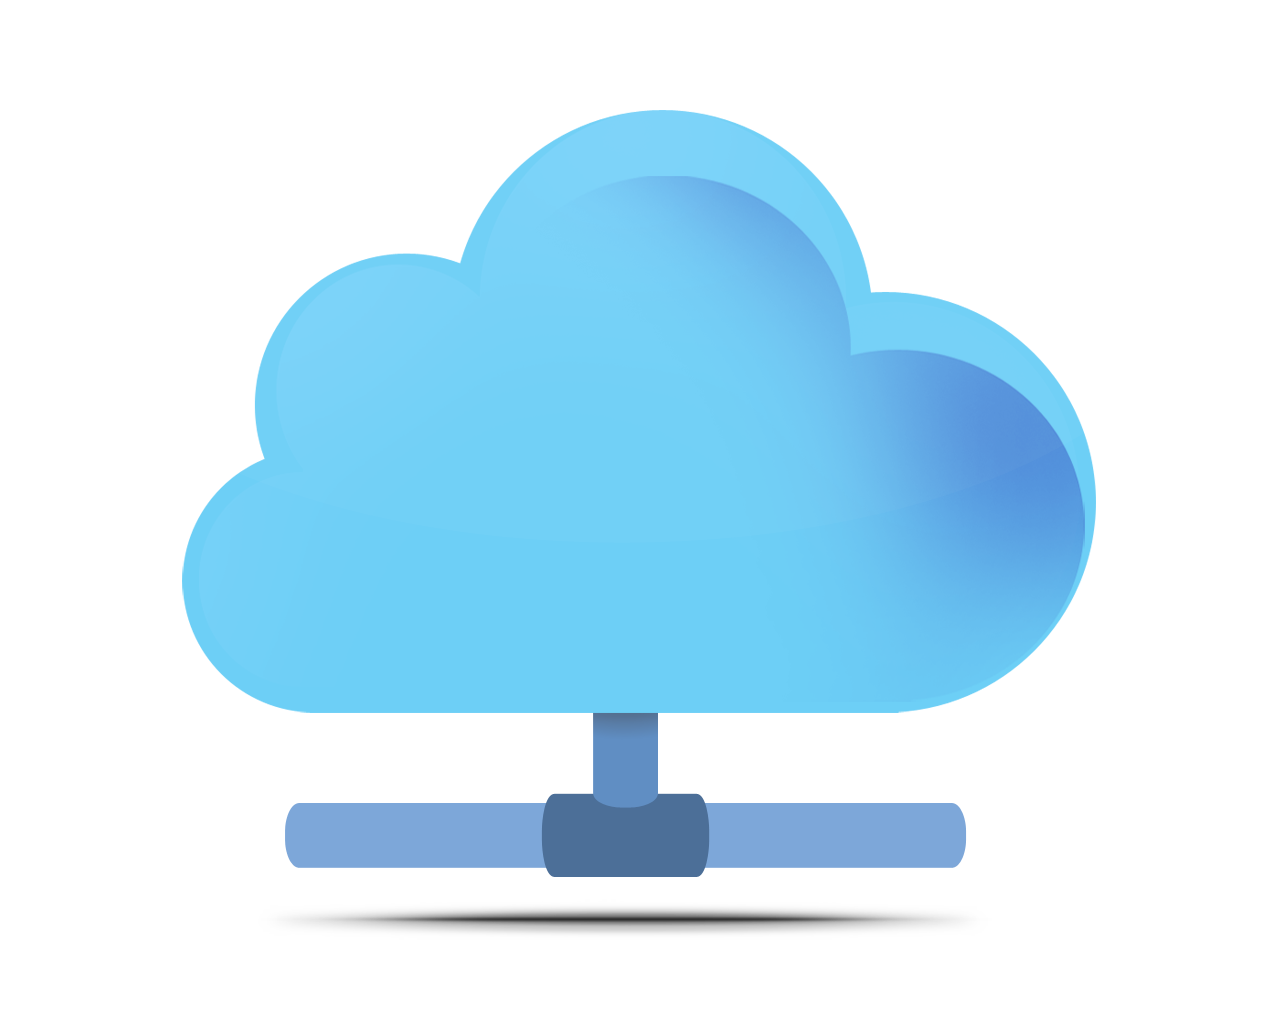 1280x1024 Cloud Computing Icon Cloud Storage Cloud And Cloud